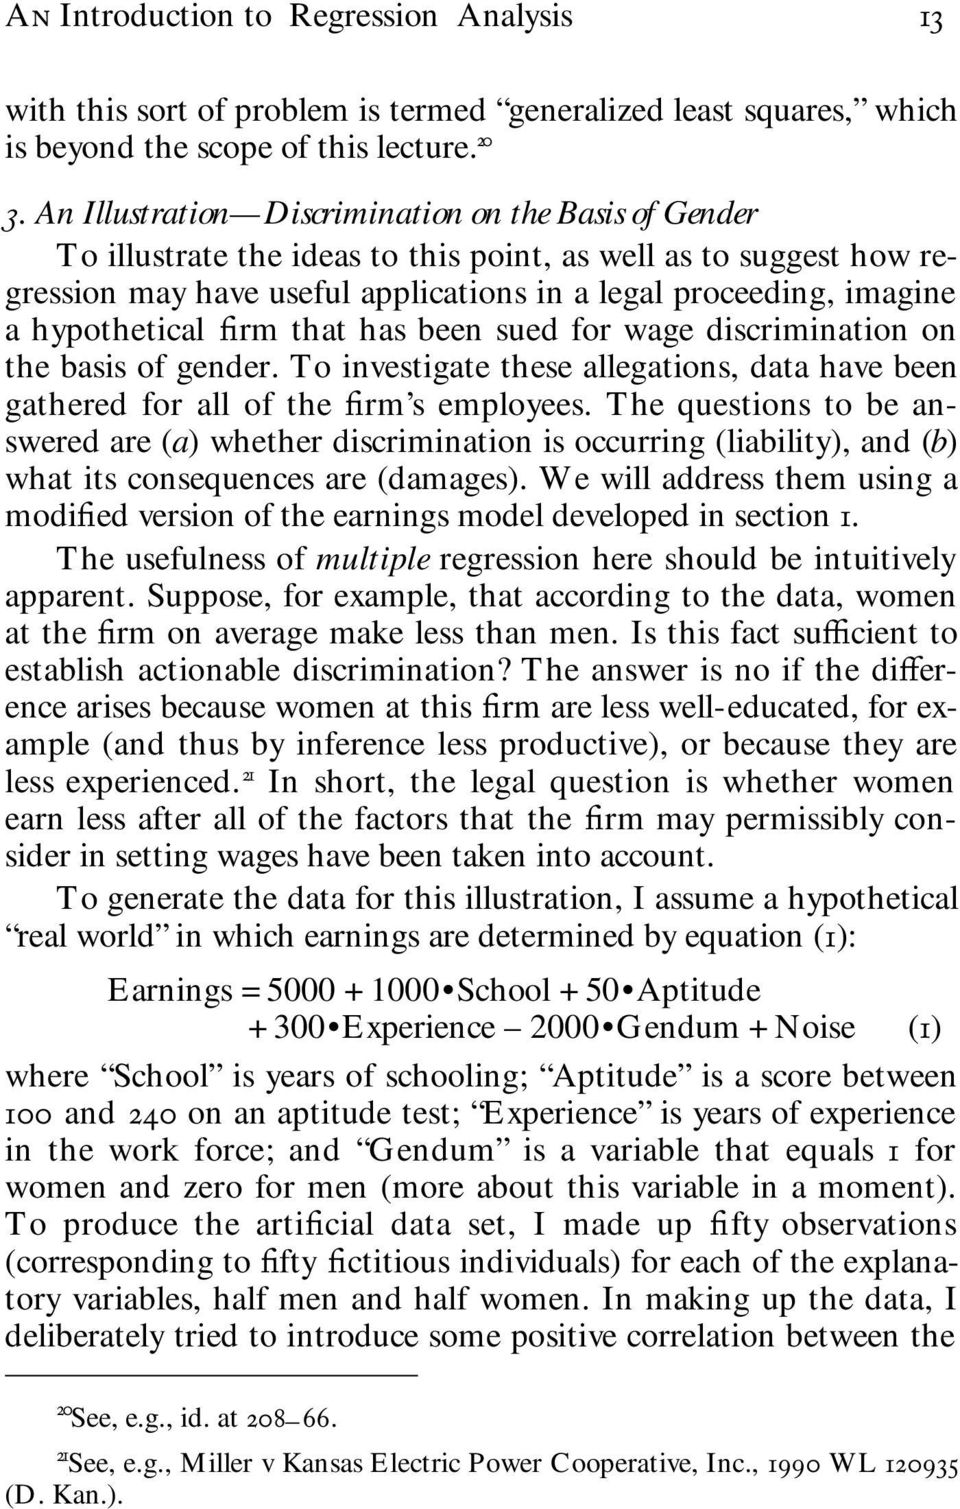 hypothetical firm that has been sued for wage discrimination on the basis of gender. To investigate these allegations, data have been gathered for all of the firm s employees.